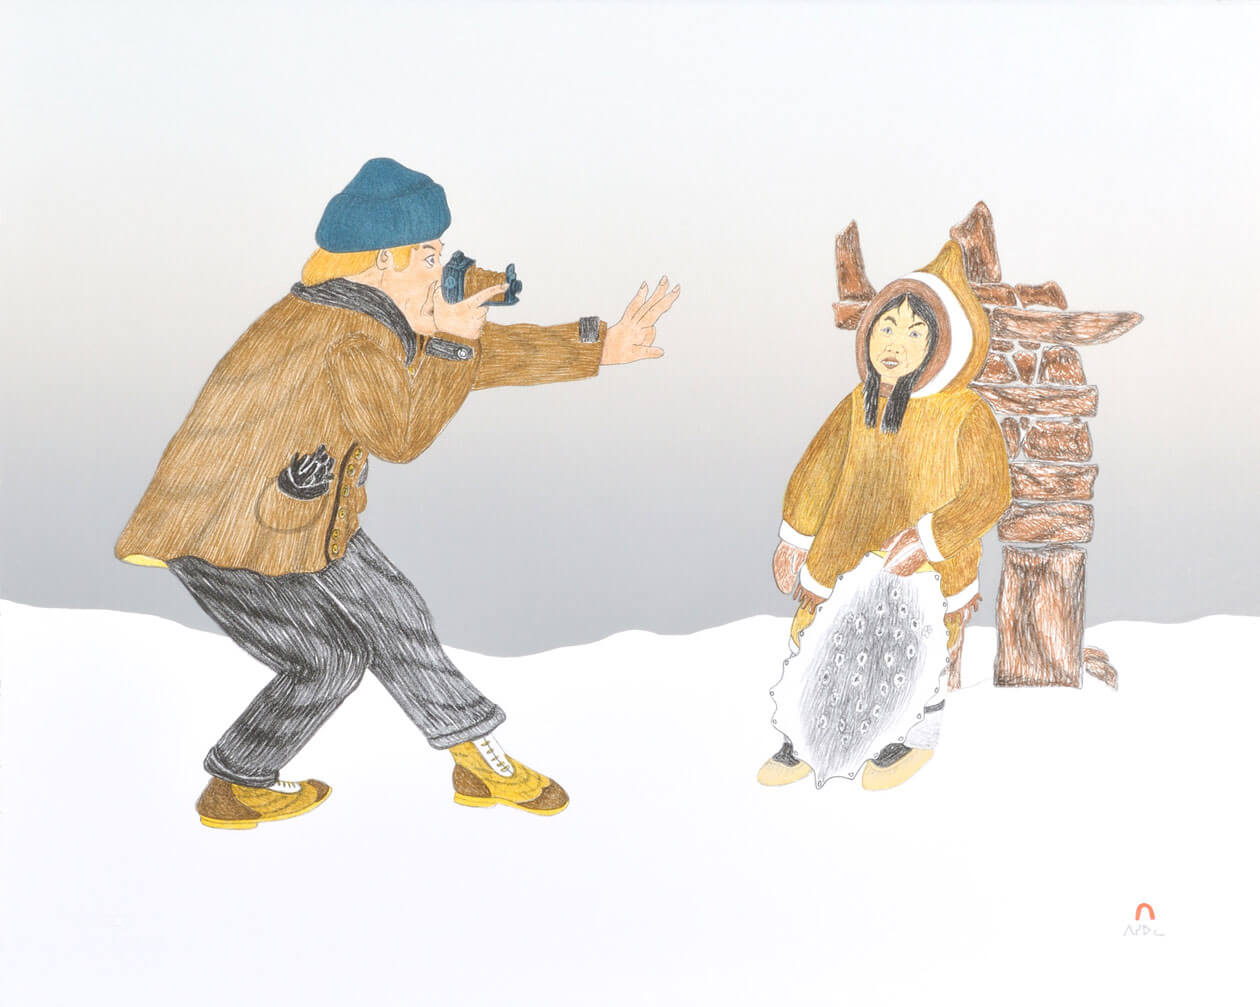 Kananginak Pootoogook (1935-2010 Kinngait) The First Tourist 1992 Lithograph 57 x 71 cm All images © Dorset Fine Arts.